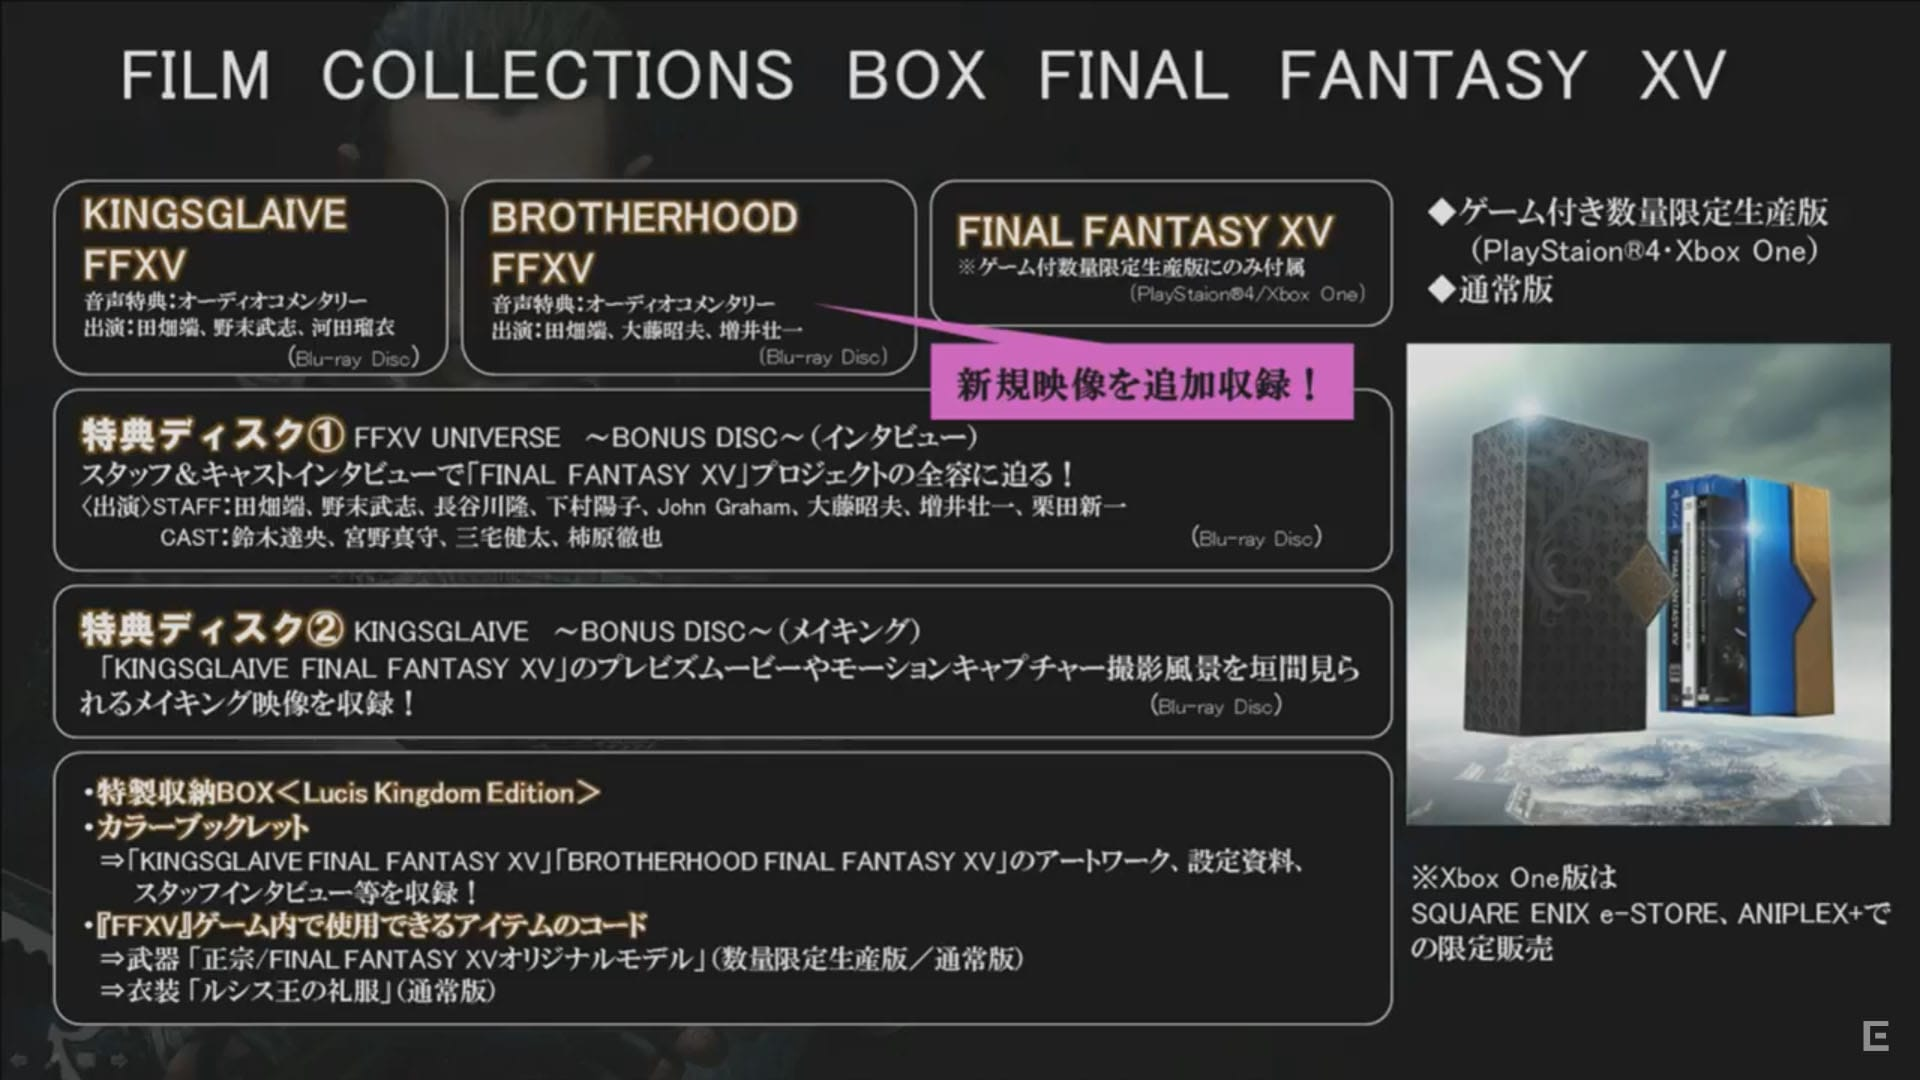 Film Collections Boxの詳細